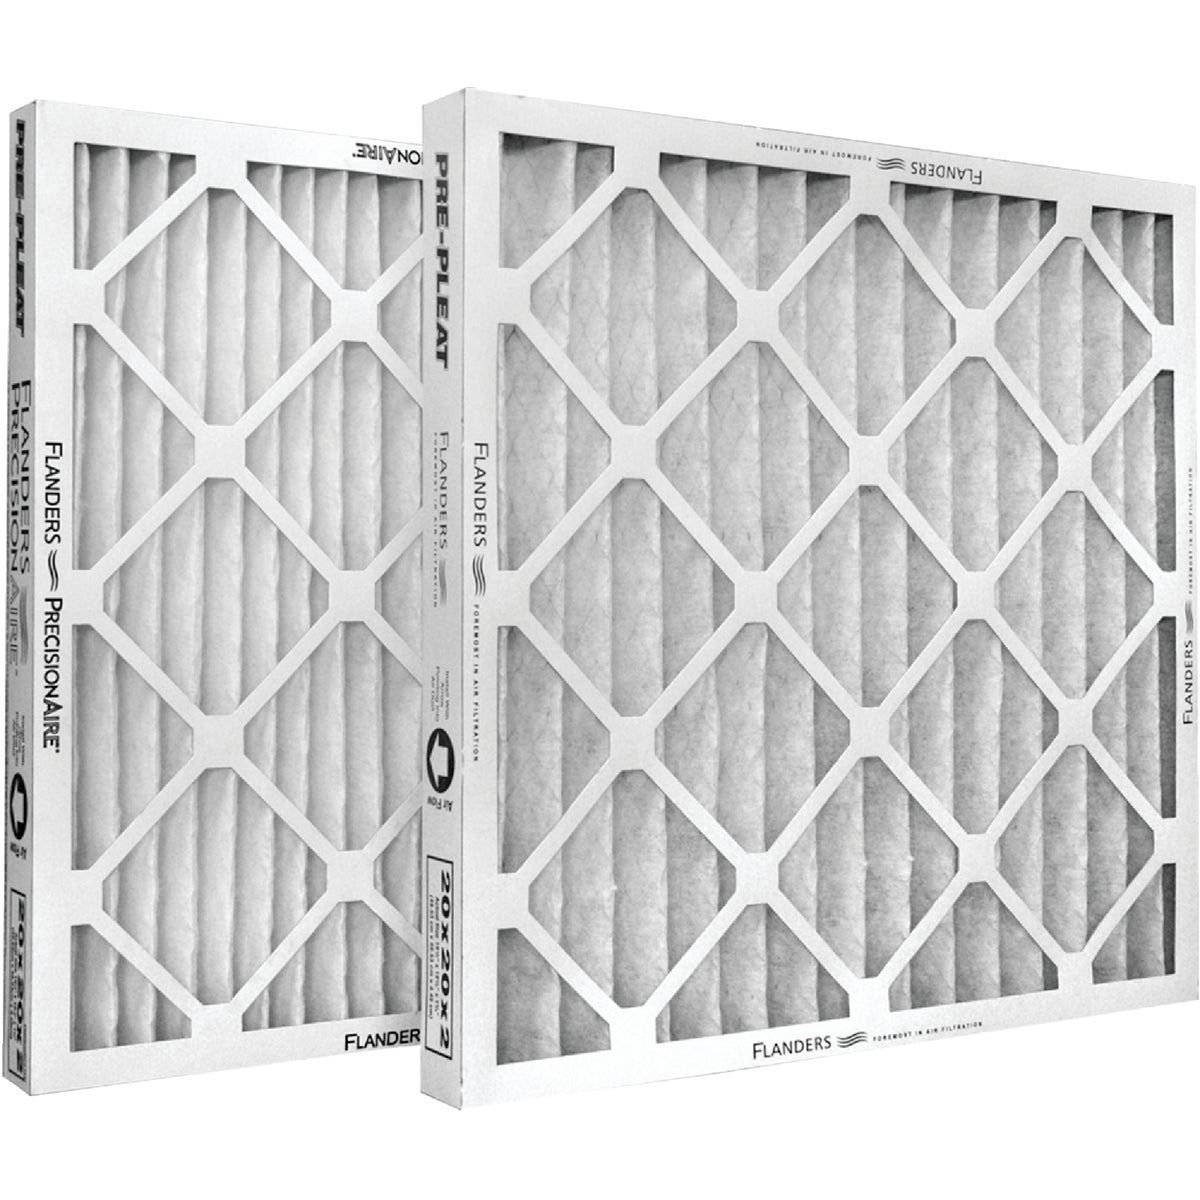 24X24X2 FURNACE FILTER - 80055.022424 by Flanders Corp